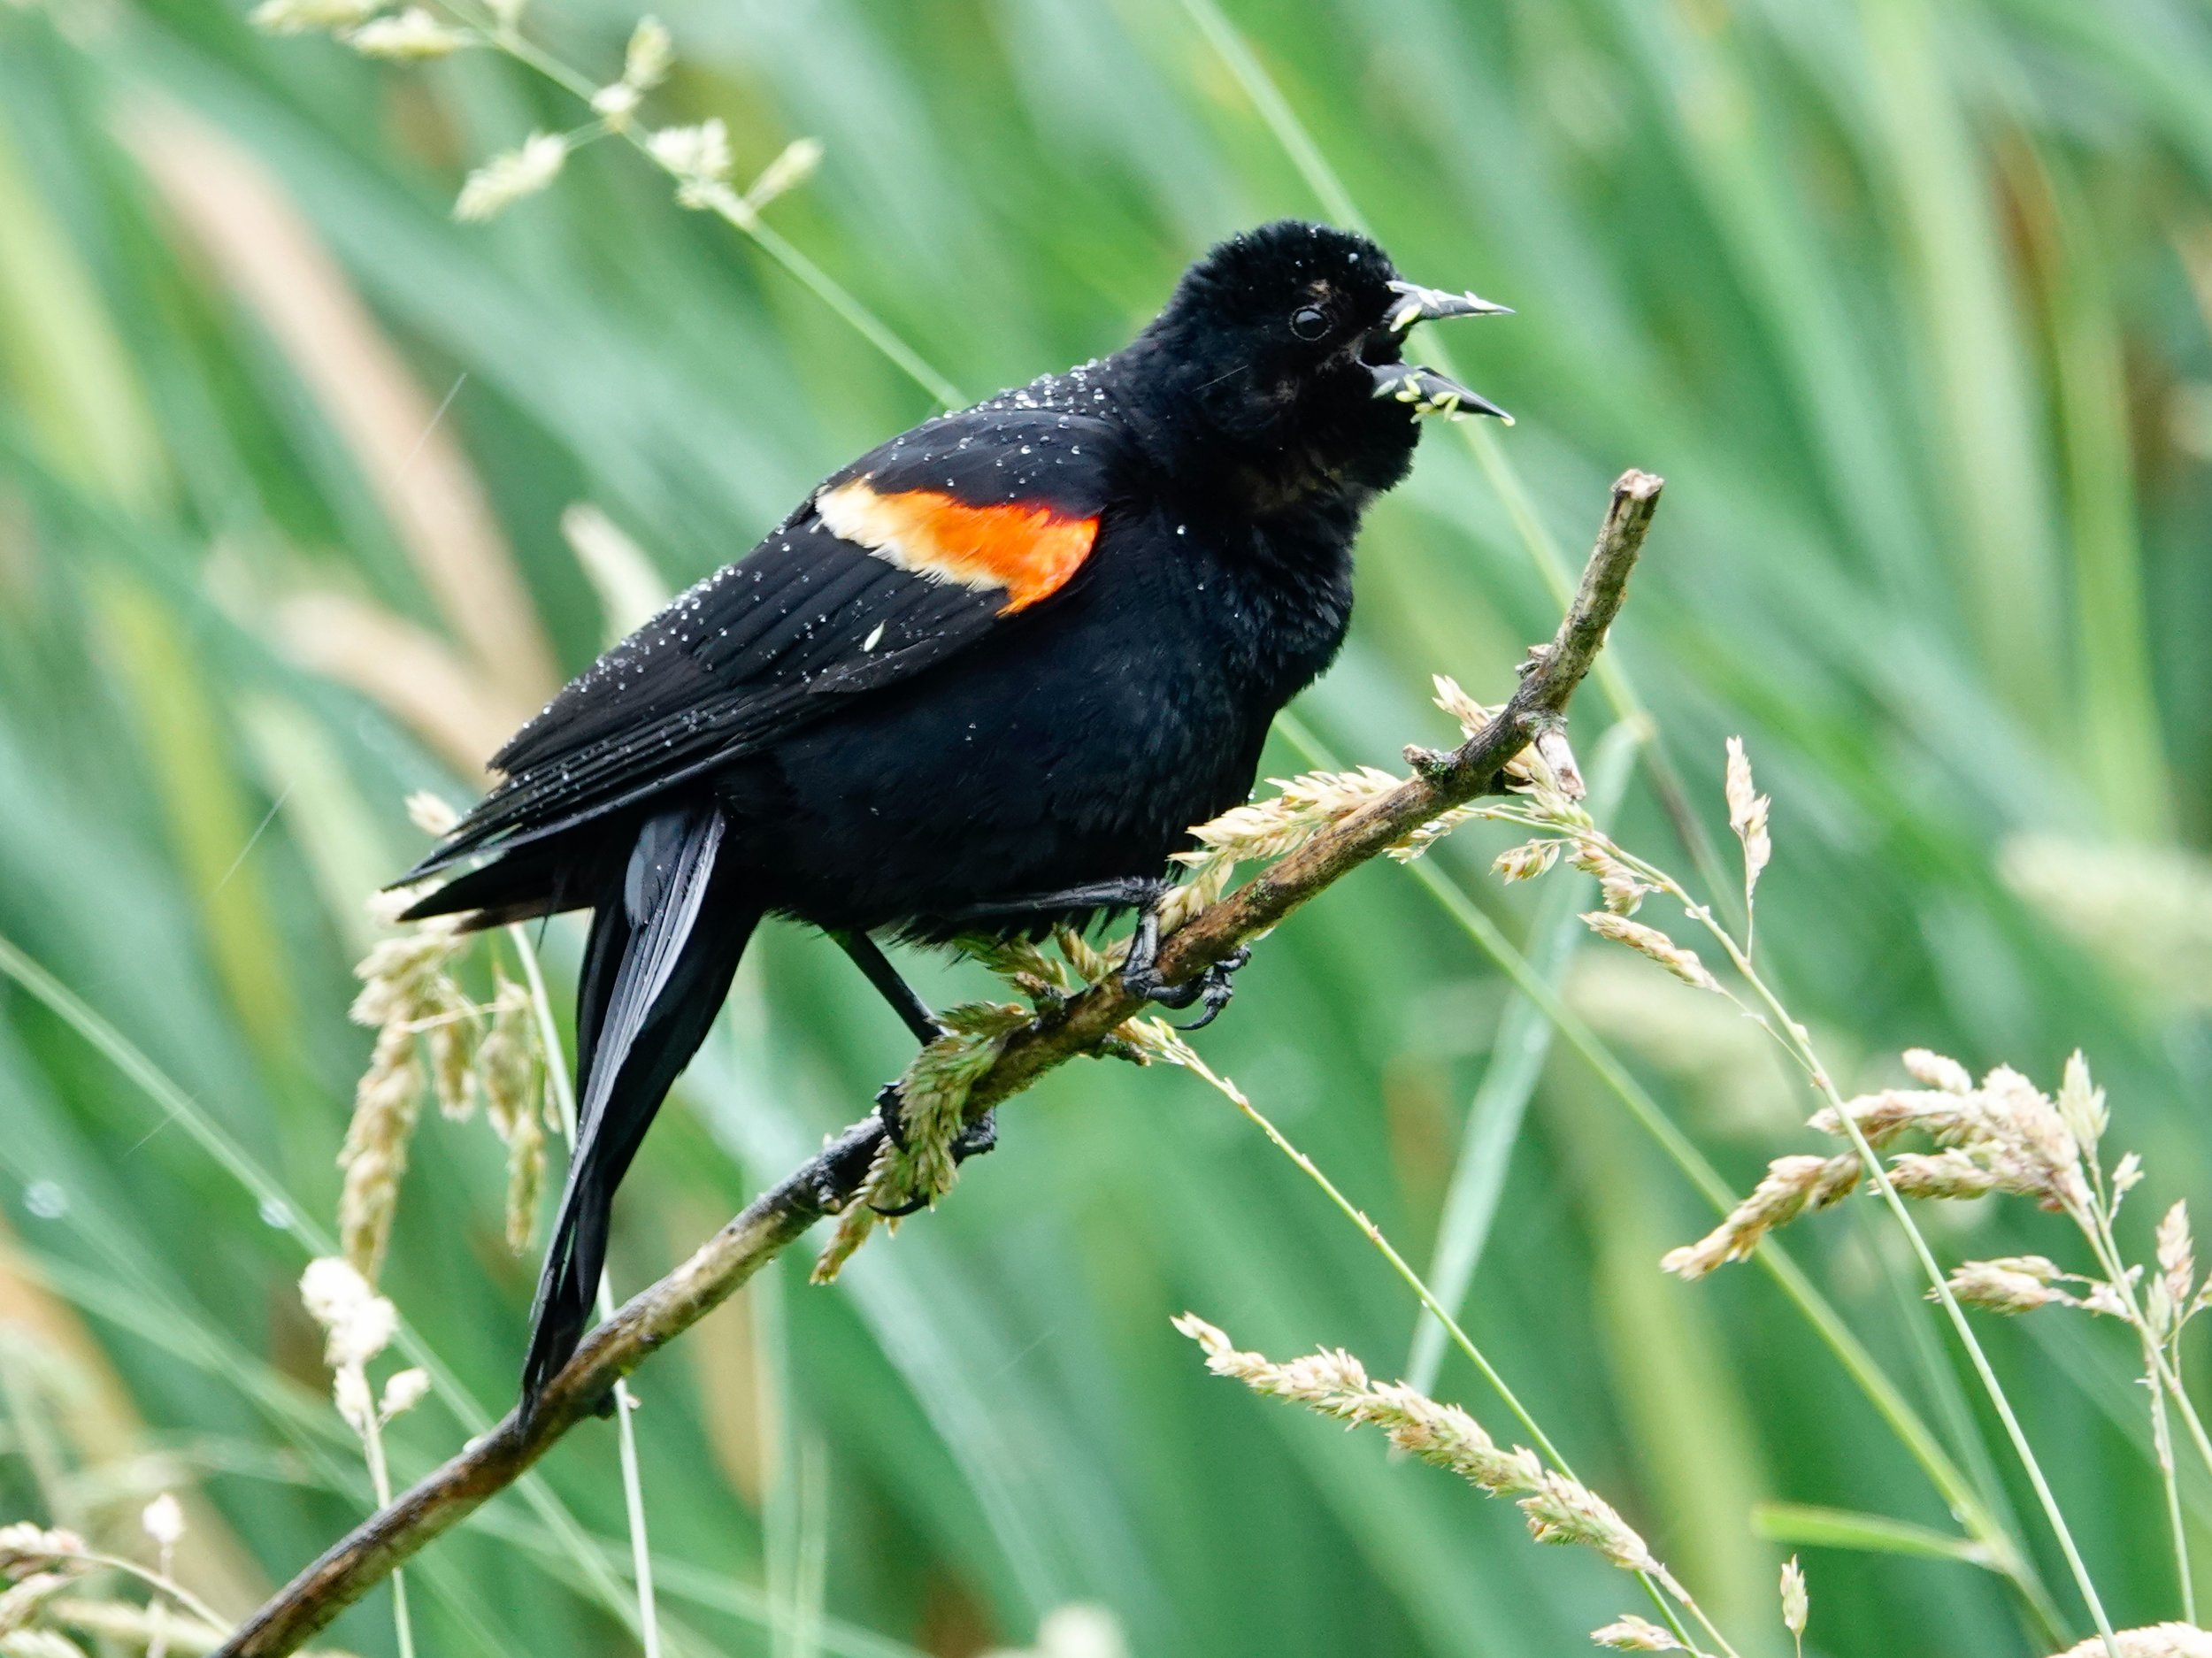 When the red-winged blackbird returns, it sings of spring.